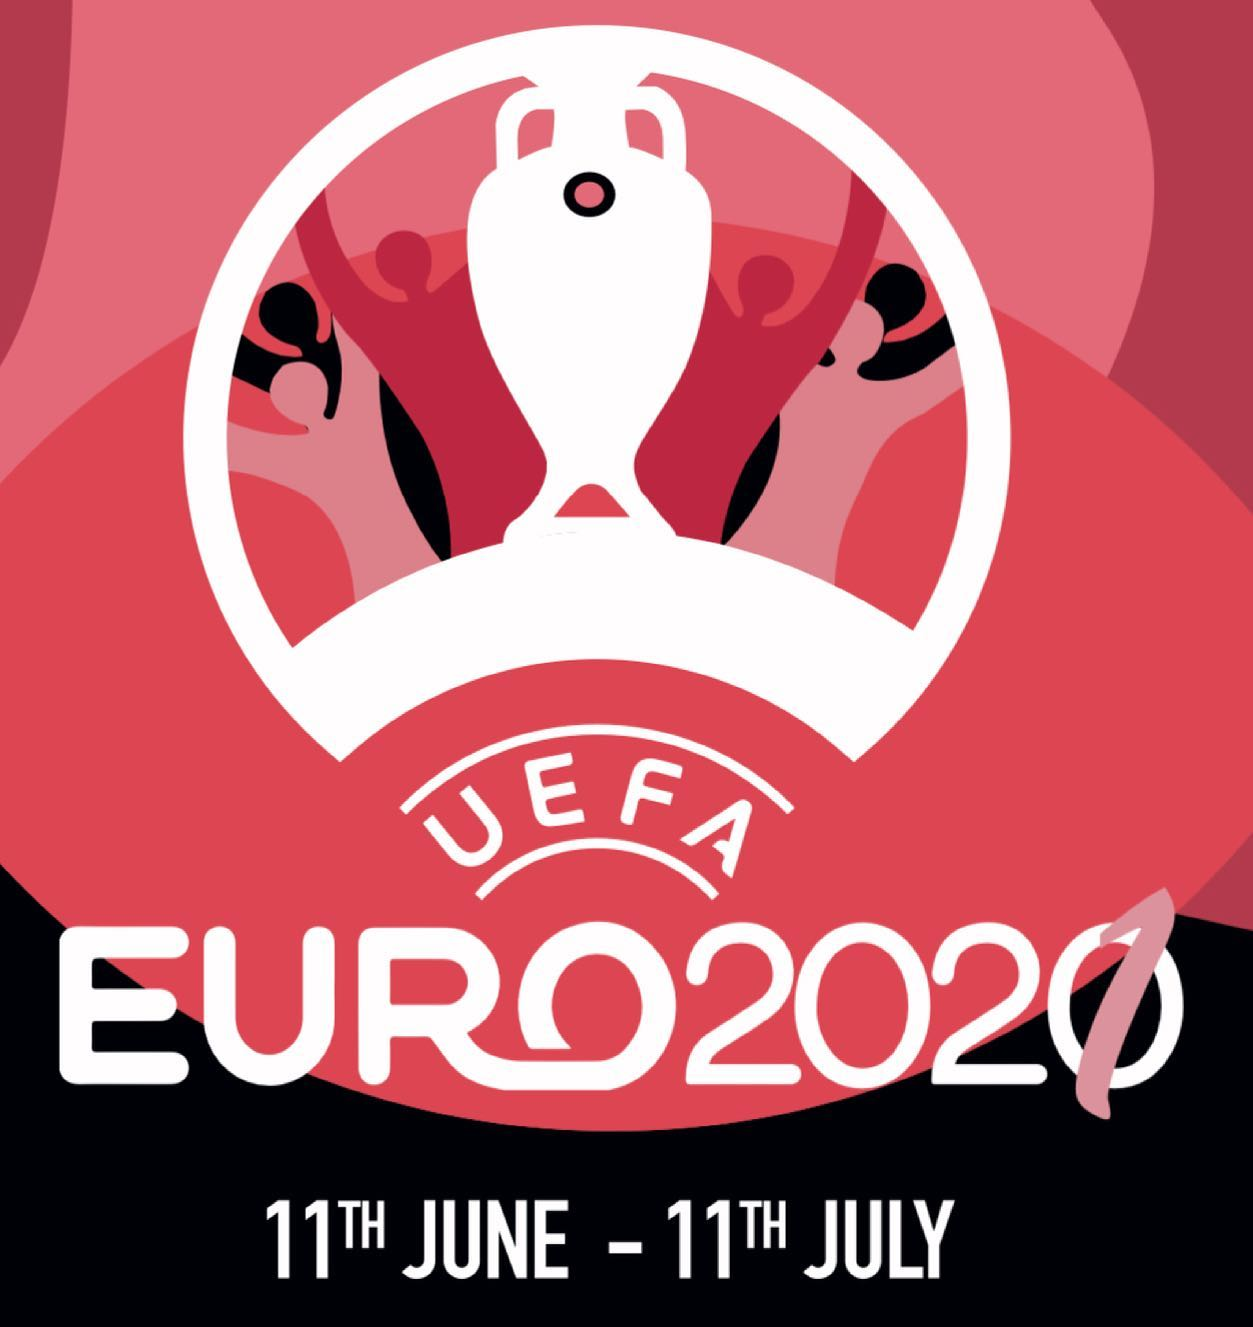 We're showing the EURO'S! ⚽️🎉  We are so excited to be showing the Euro's 2021 in our secret underground bar! Pizza, Beer and Football! What more could you ask for? Book now to reserve your seat! 🍕🍻⚽️ • • • • • #pizza #wellstreetpizza #euros2021 #euros #beerandpizza #youwantapizzame #bookyourseat #hackney #watchthisspace #london #football #watchwithus